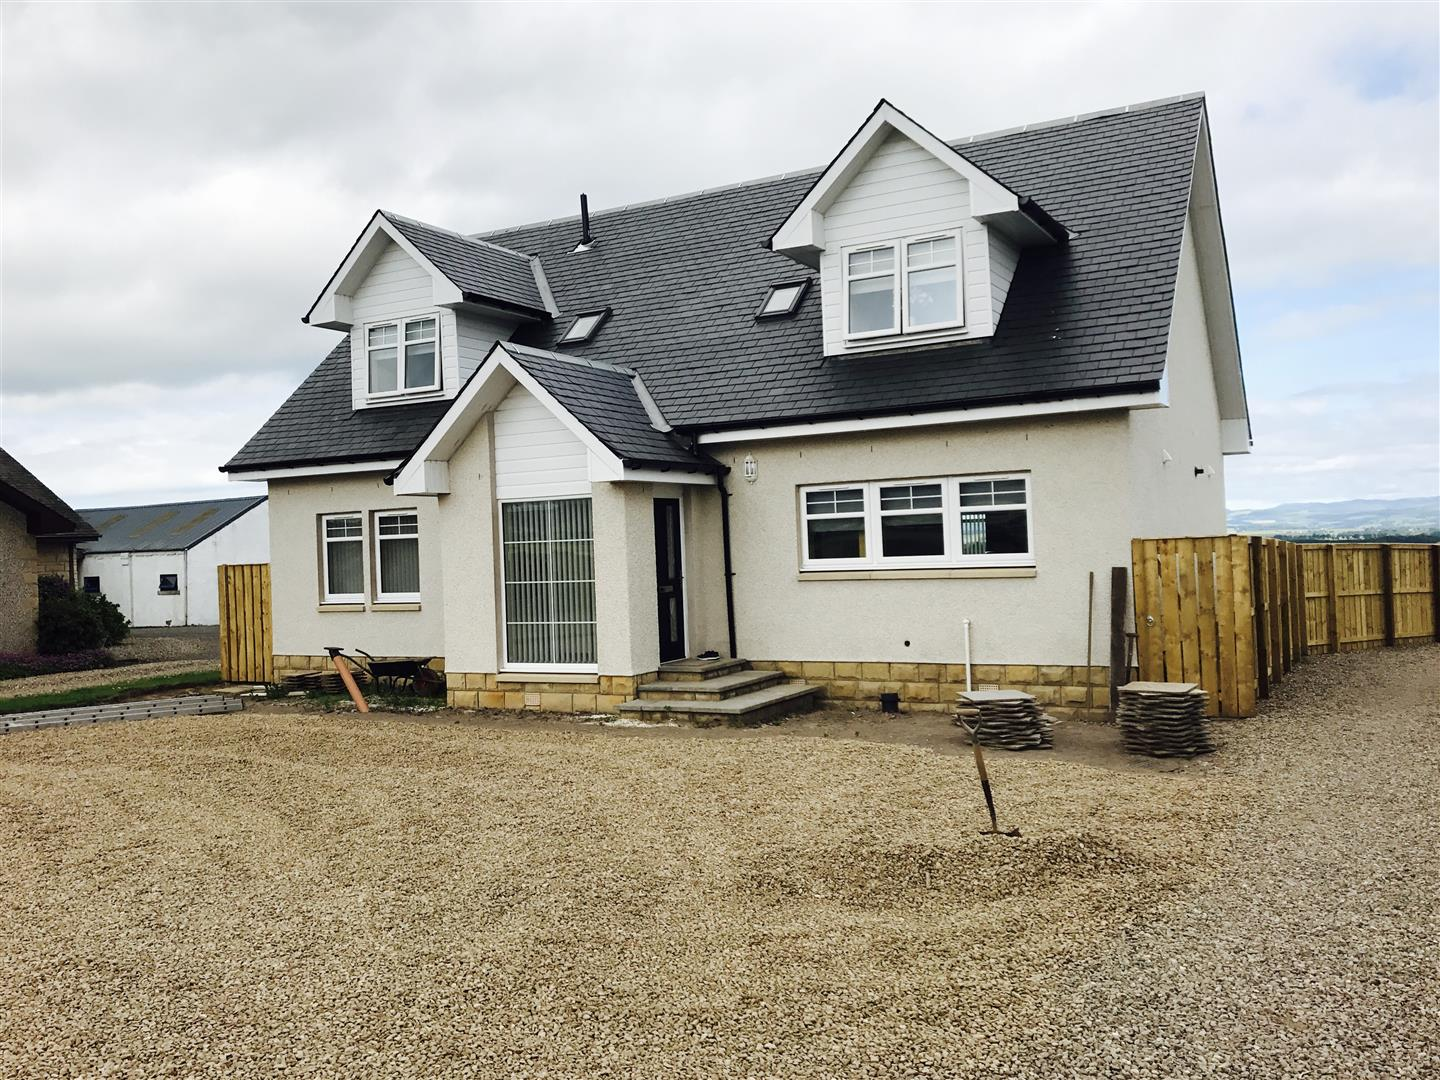 New House at Saucher, Kinrossie, Perth, Perthshire, PH2 6HY, UK